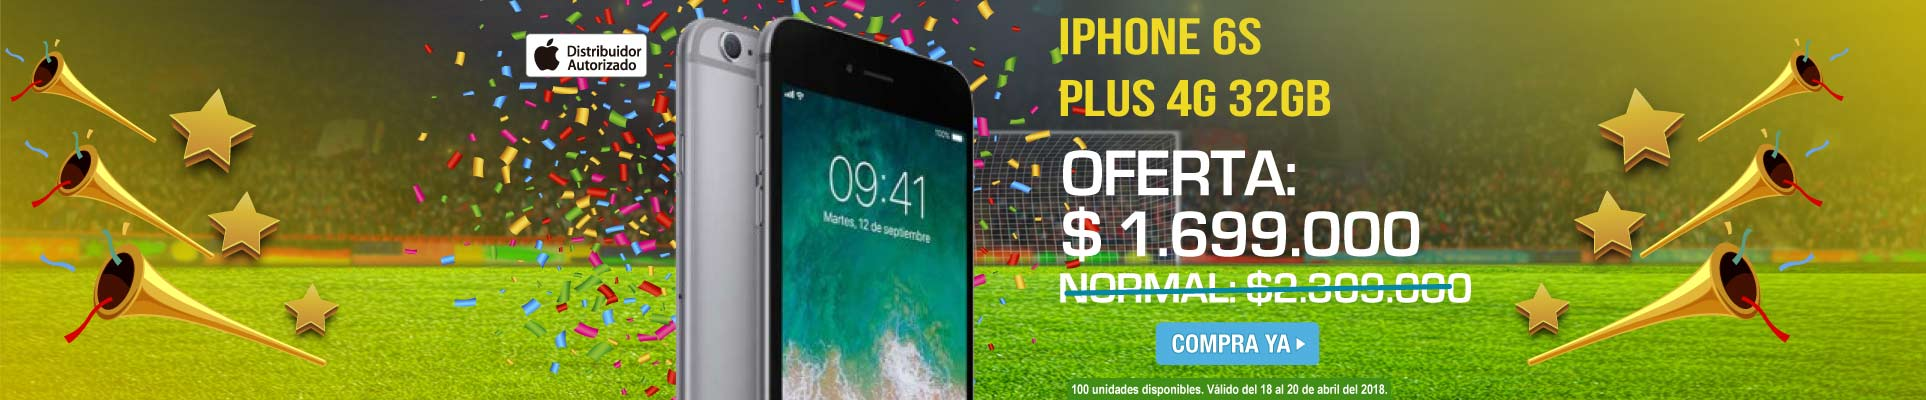 PPAL ALKP-2-celulares-iPhone 6s Plus 4G 32GB-prod-Abril18-20